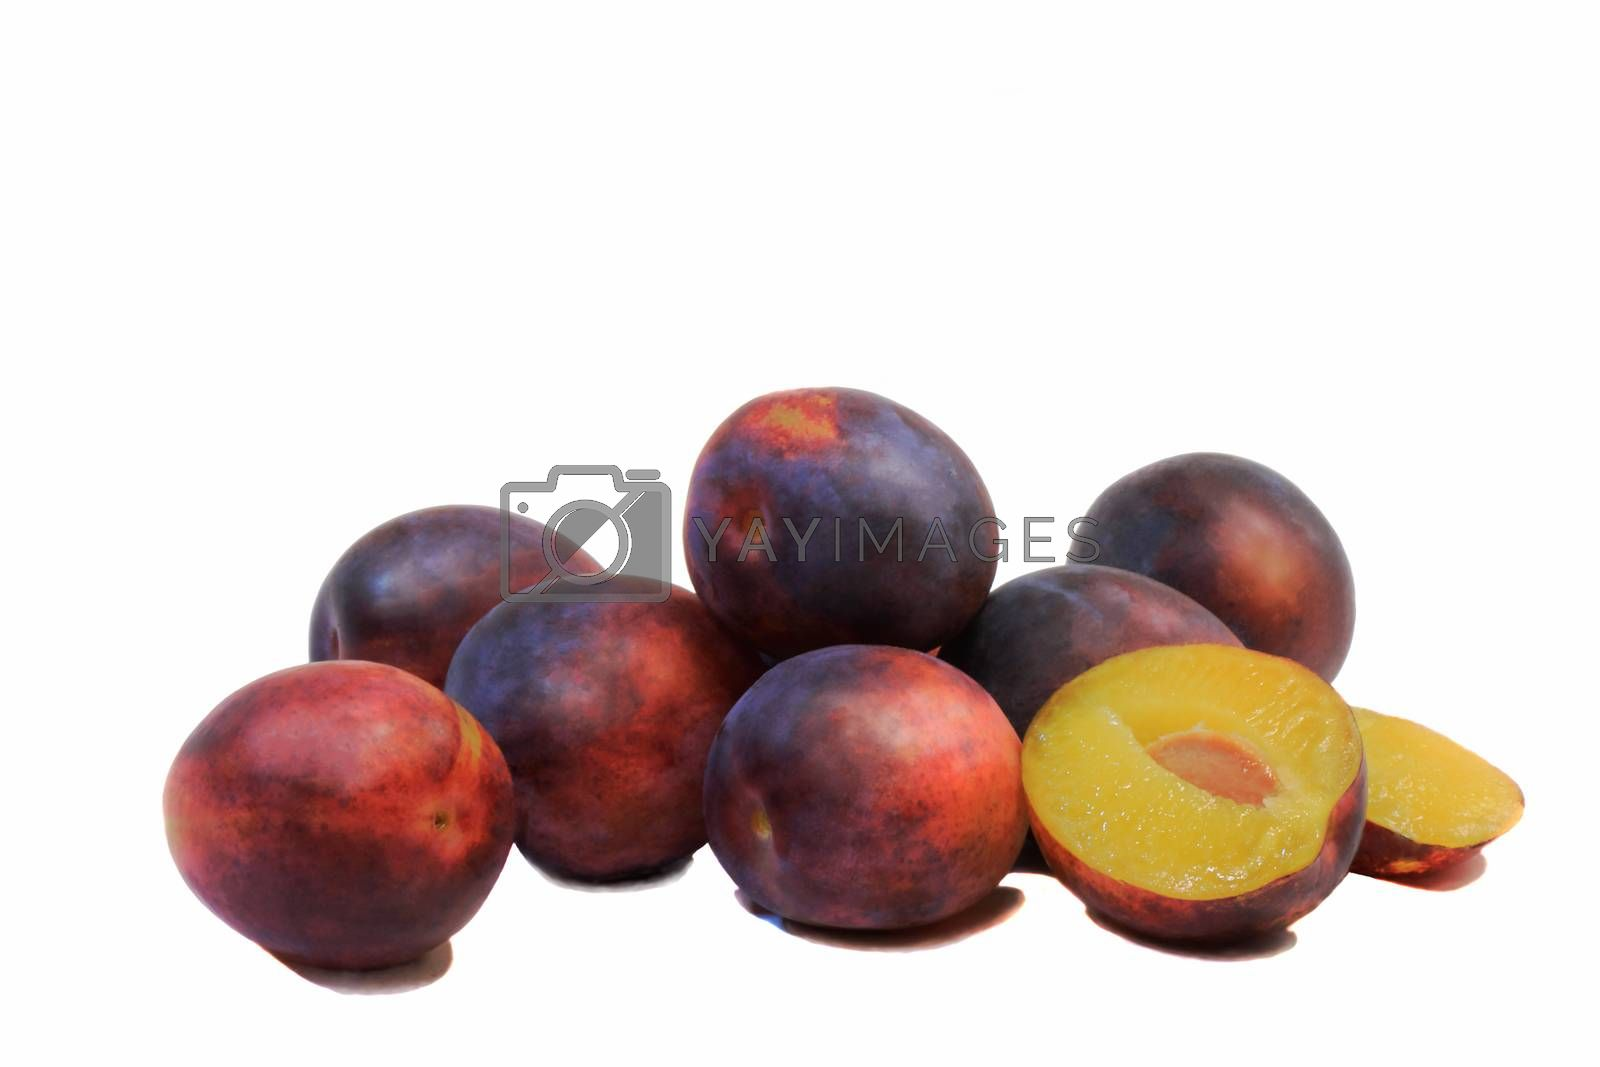 Large ripe plum and one exploded drain on white background